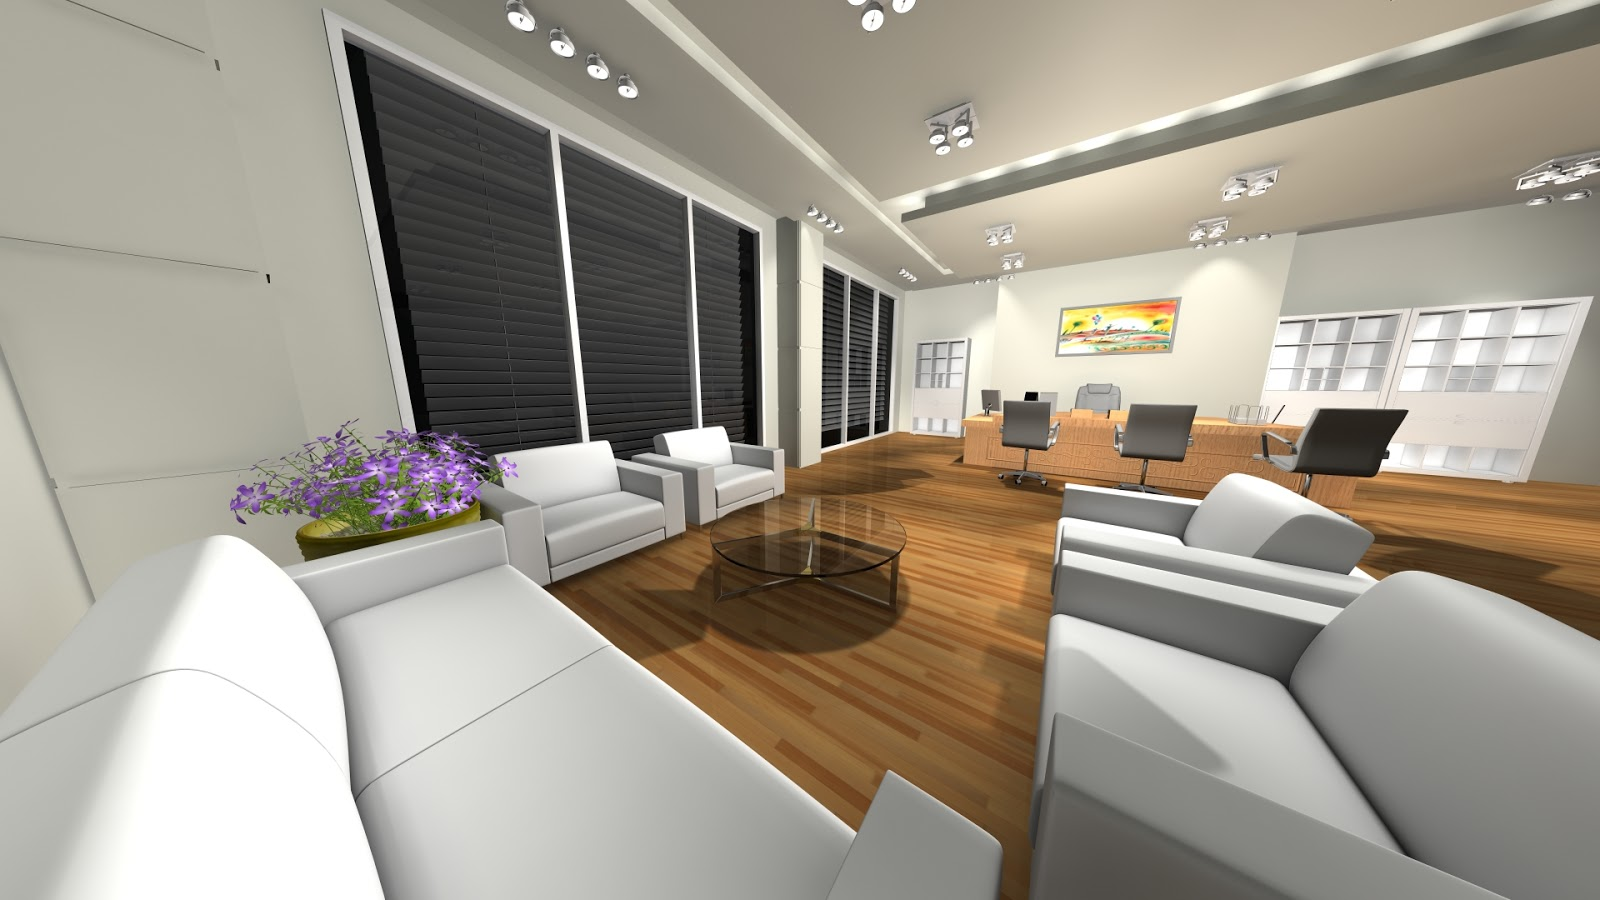 Sajid designer office room 3d interior design 3ds max - Interior desinge ...